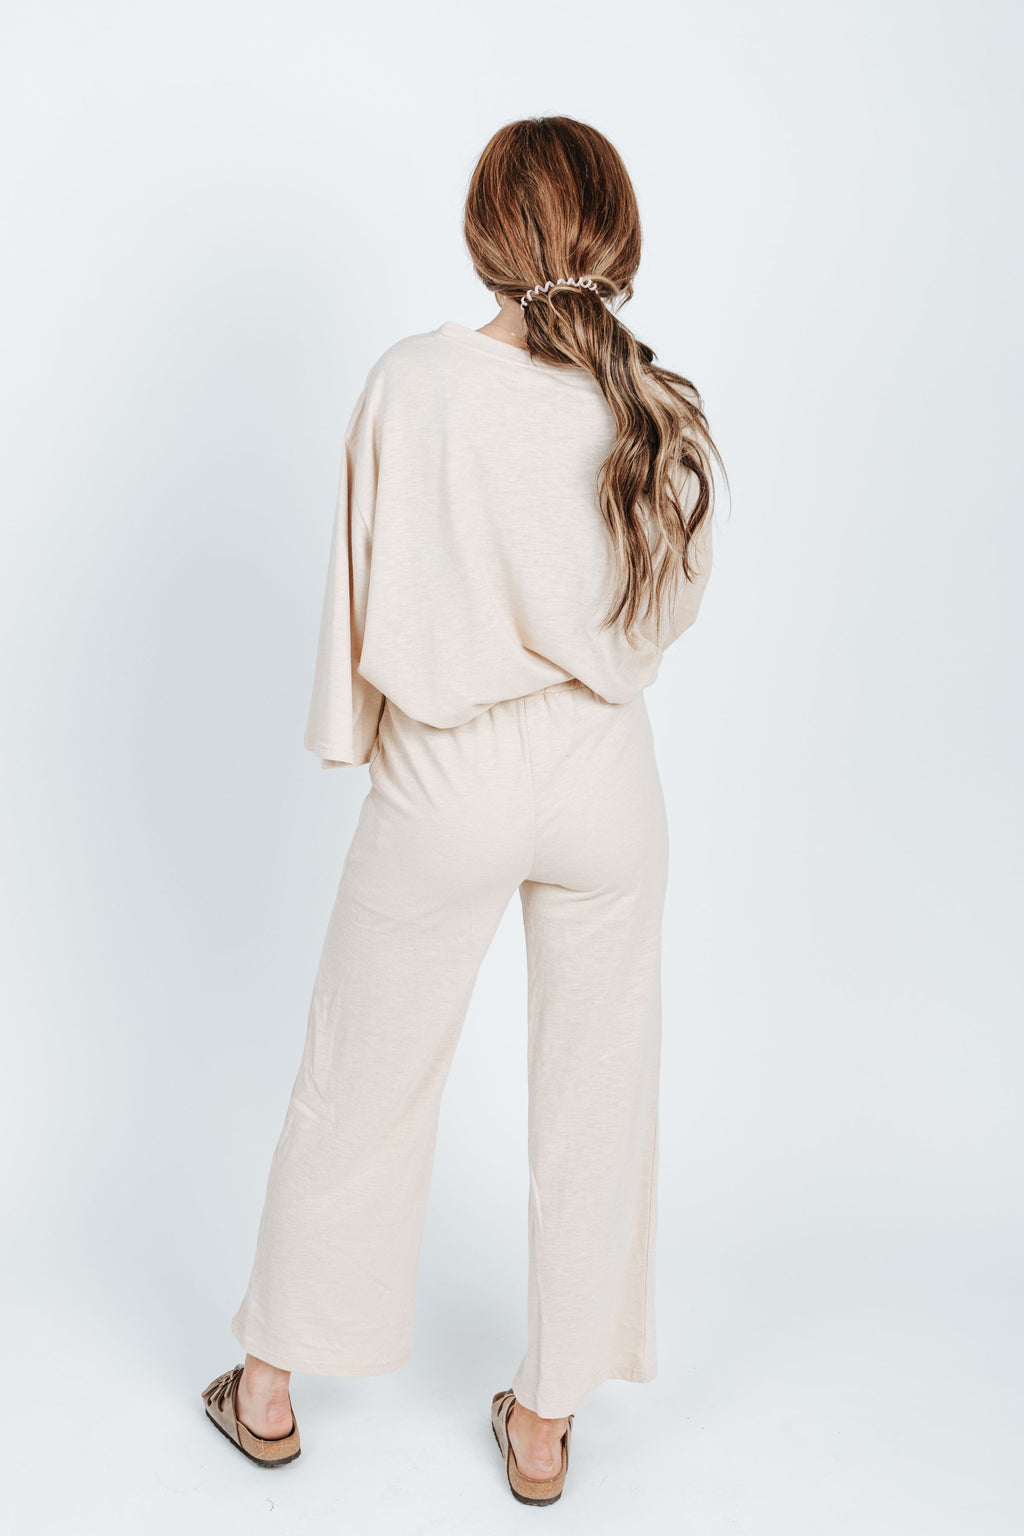 The Selena Casual Lounge Set in Natural, studio shoot; back view